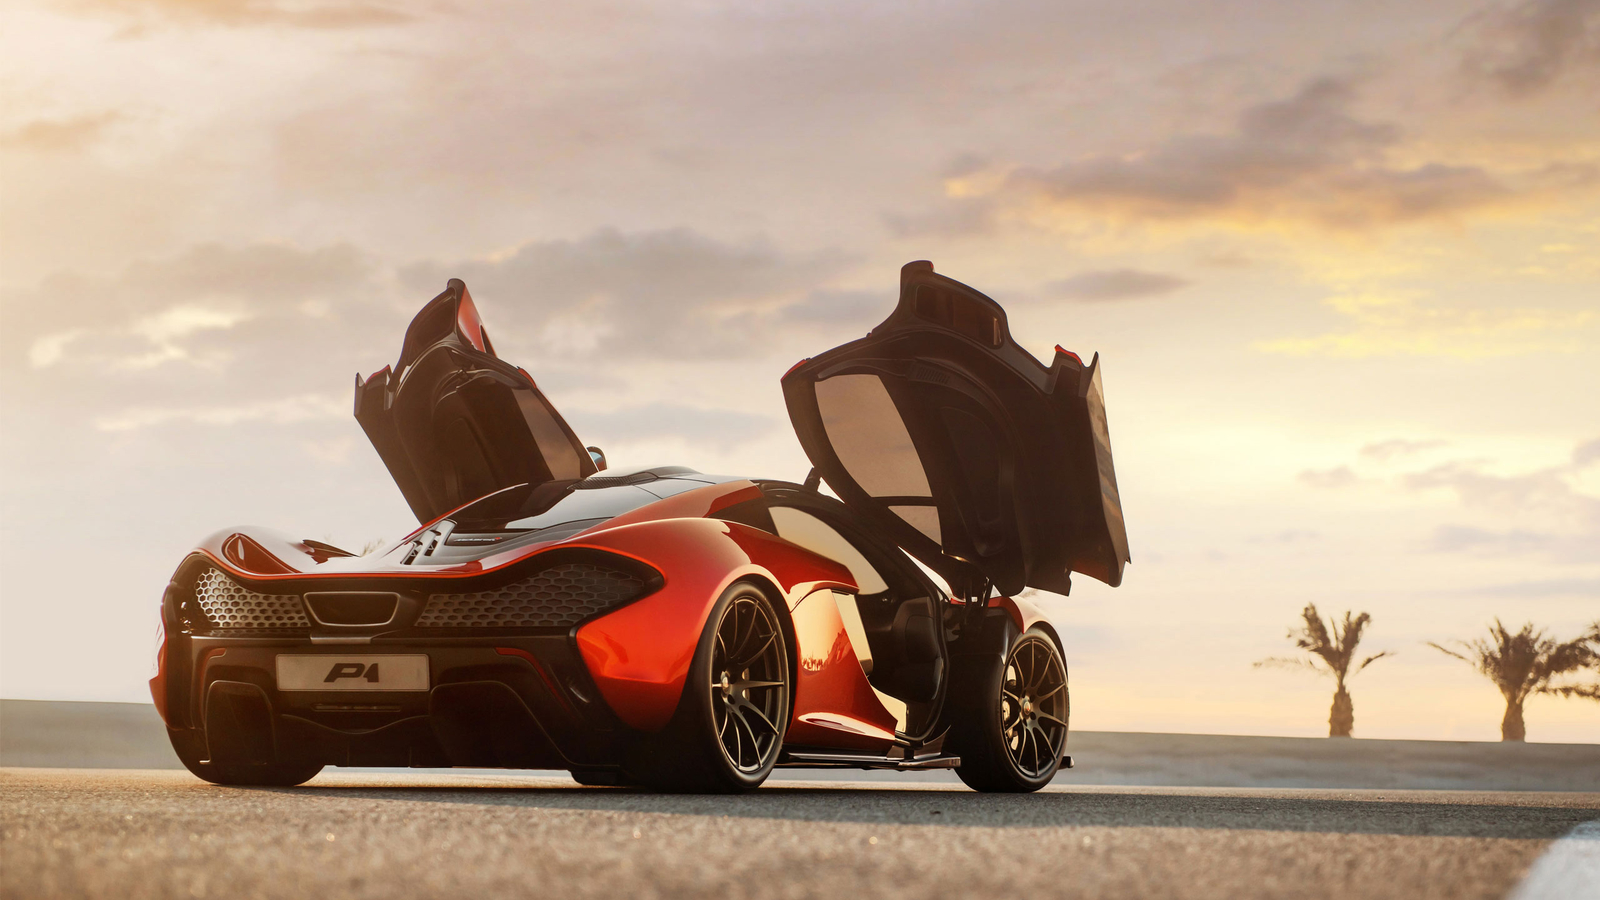 McLaren supercar wallpaper download 49774 - Automotive Wallpapers ...